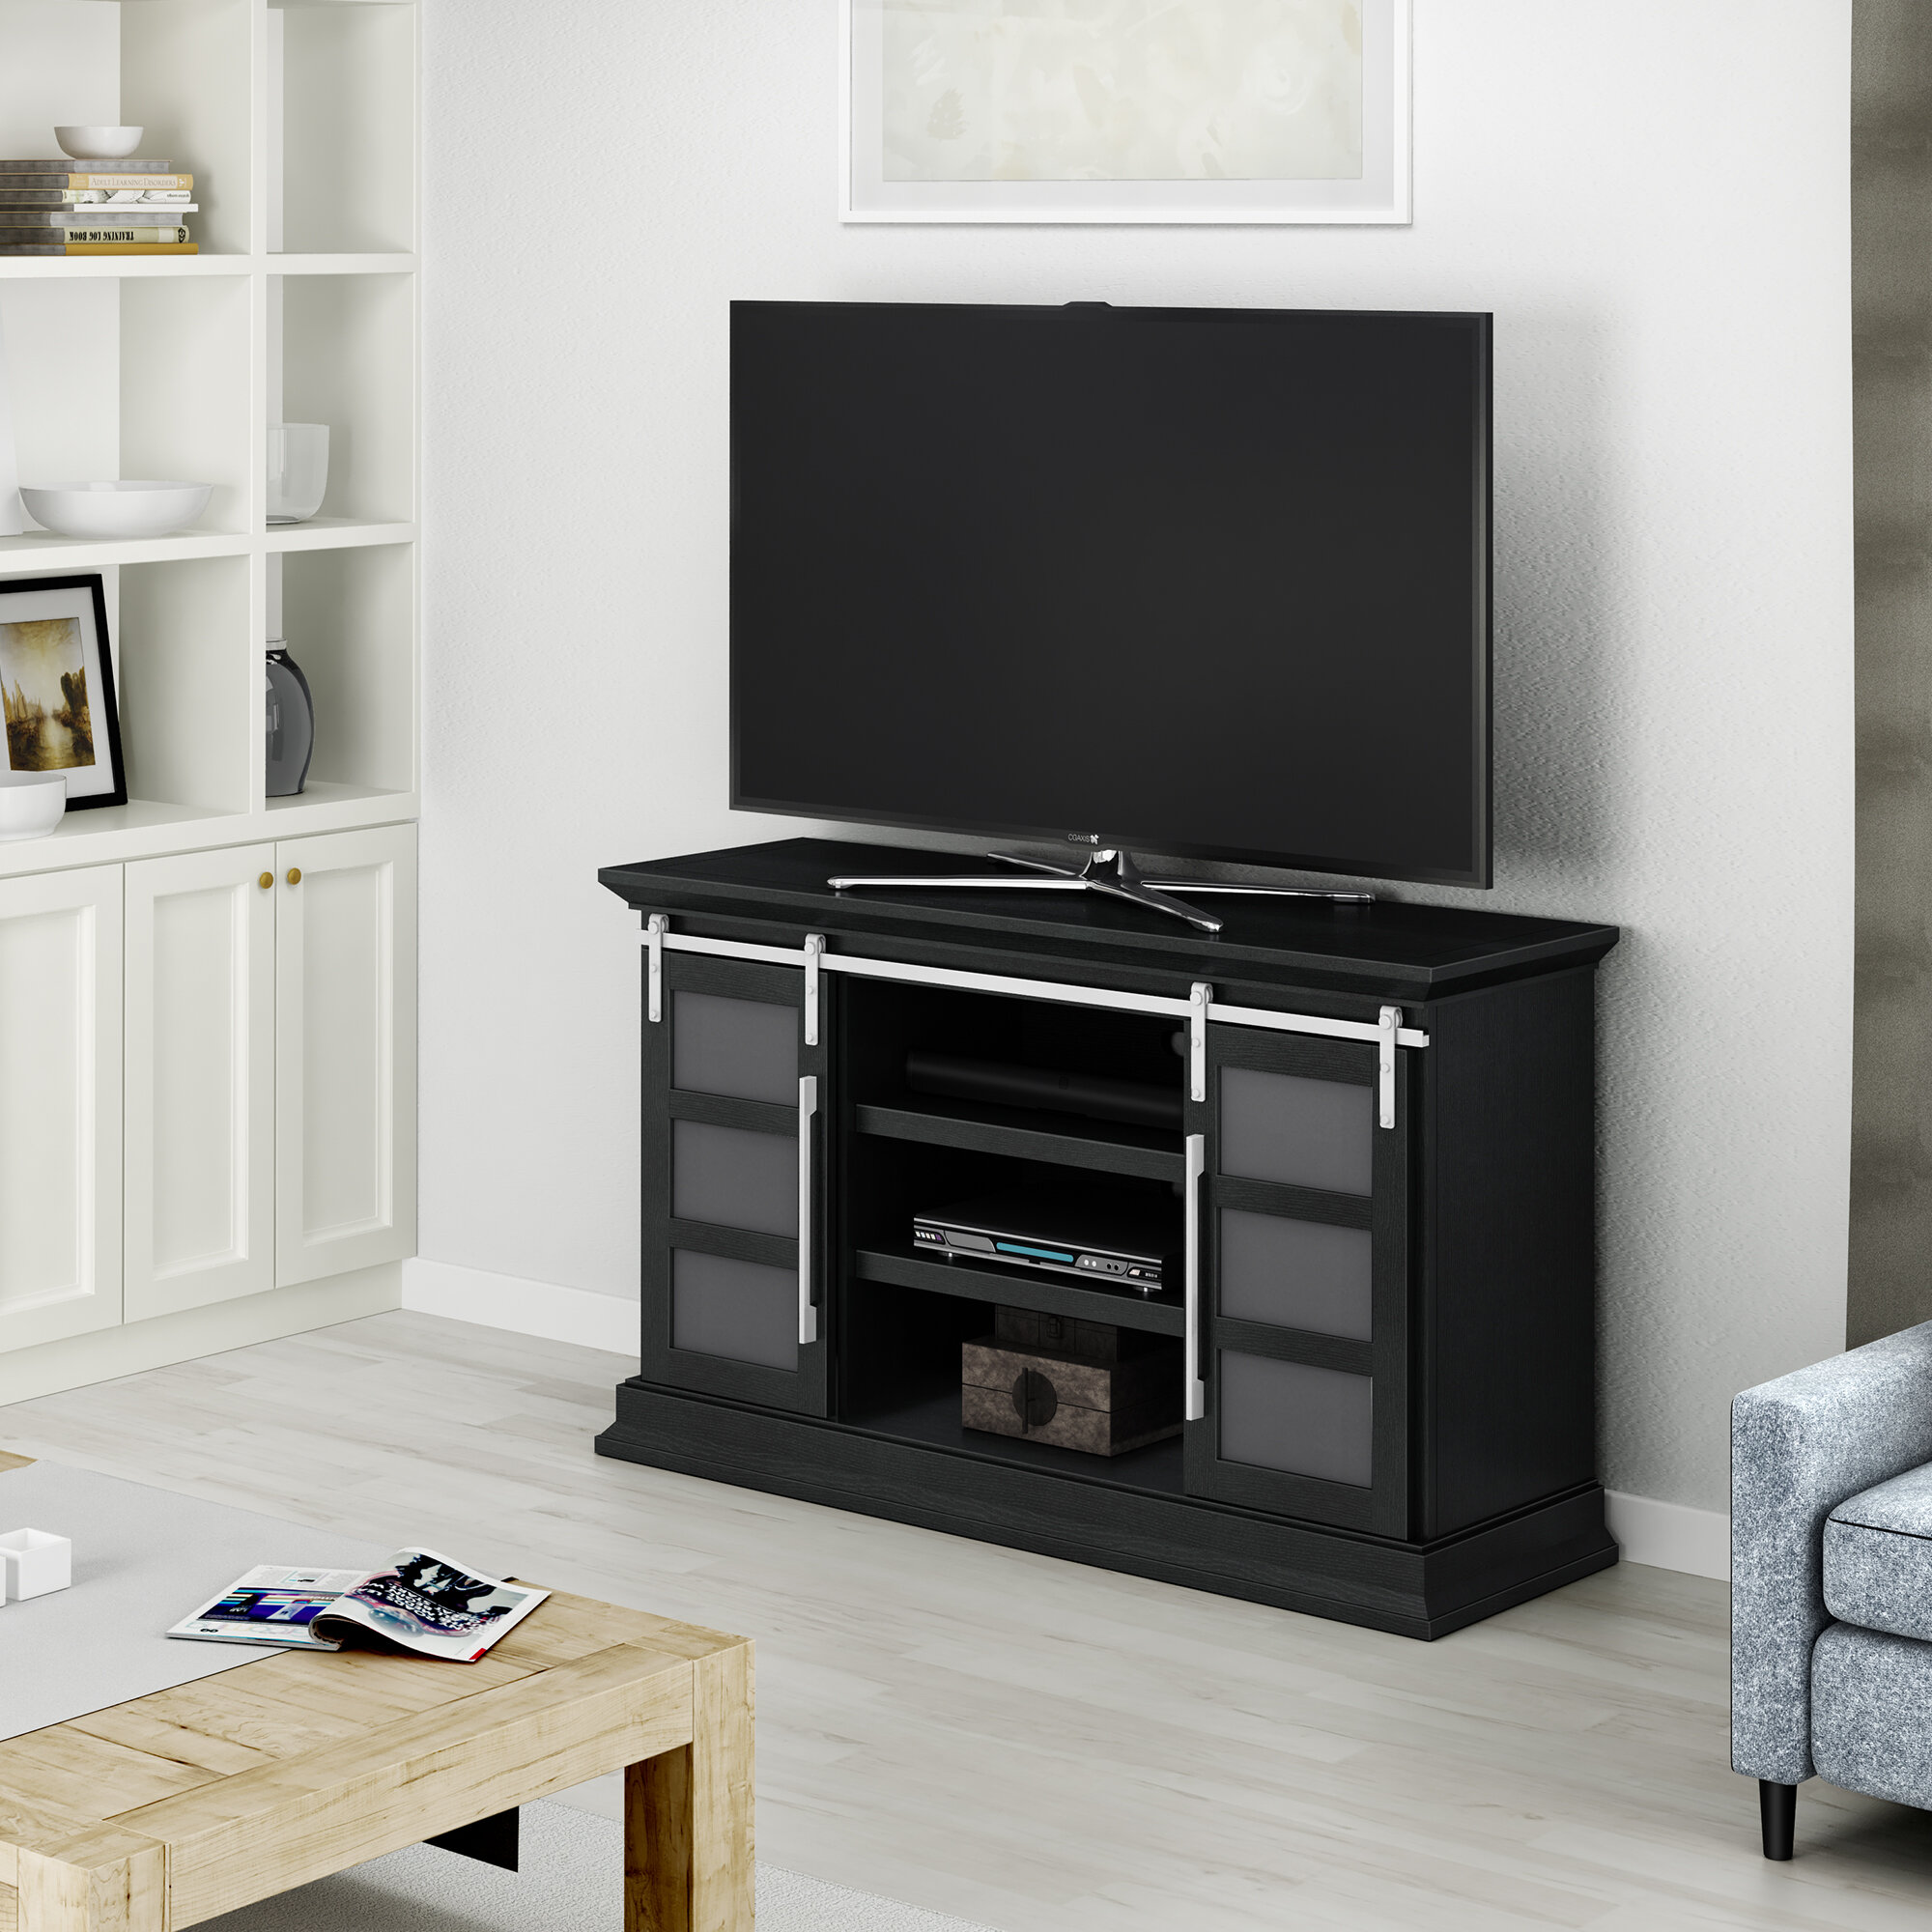 Latitude run willingboro tv stand for tvs up to 60 reviews wayfair